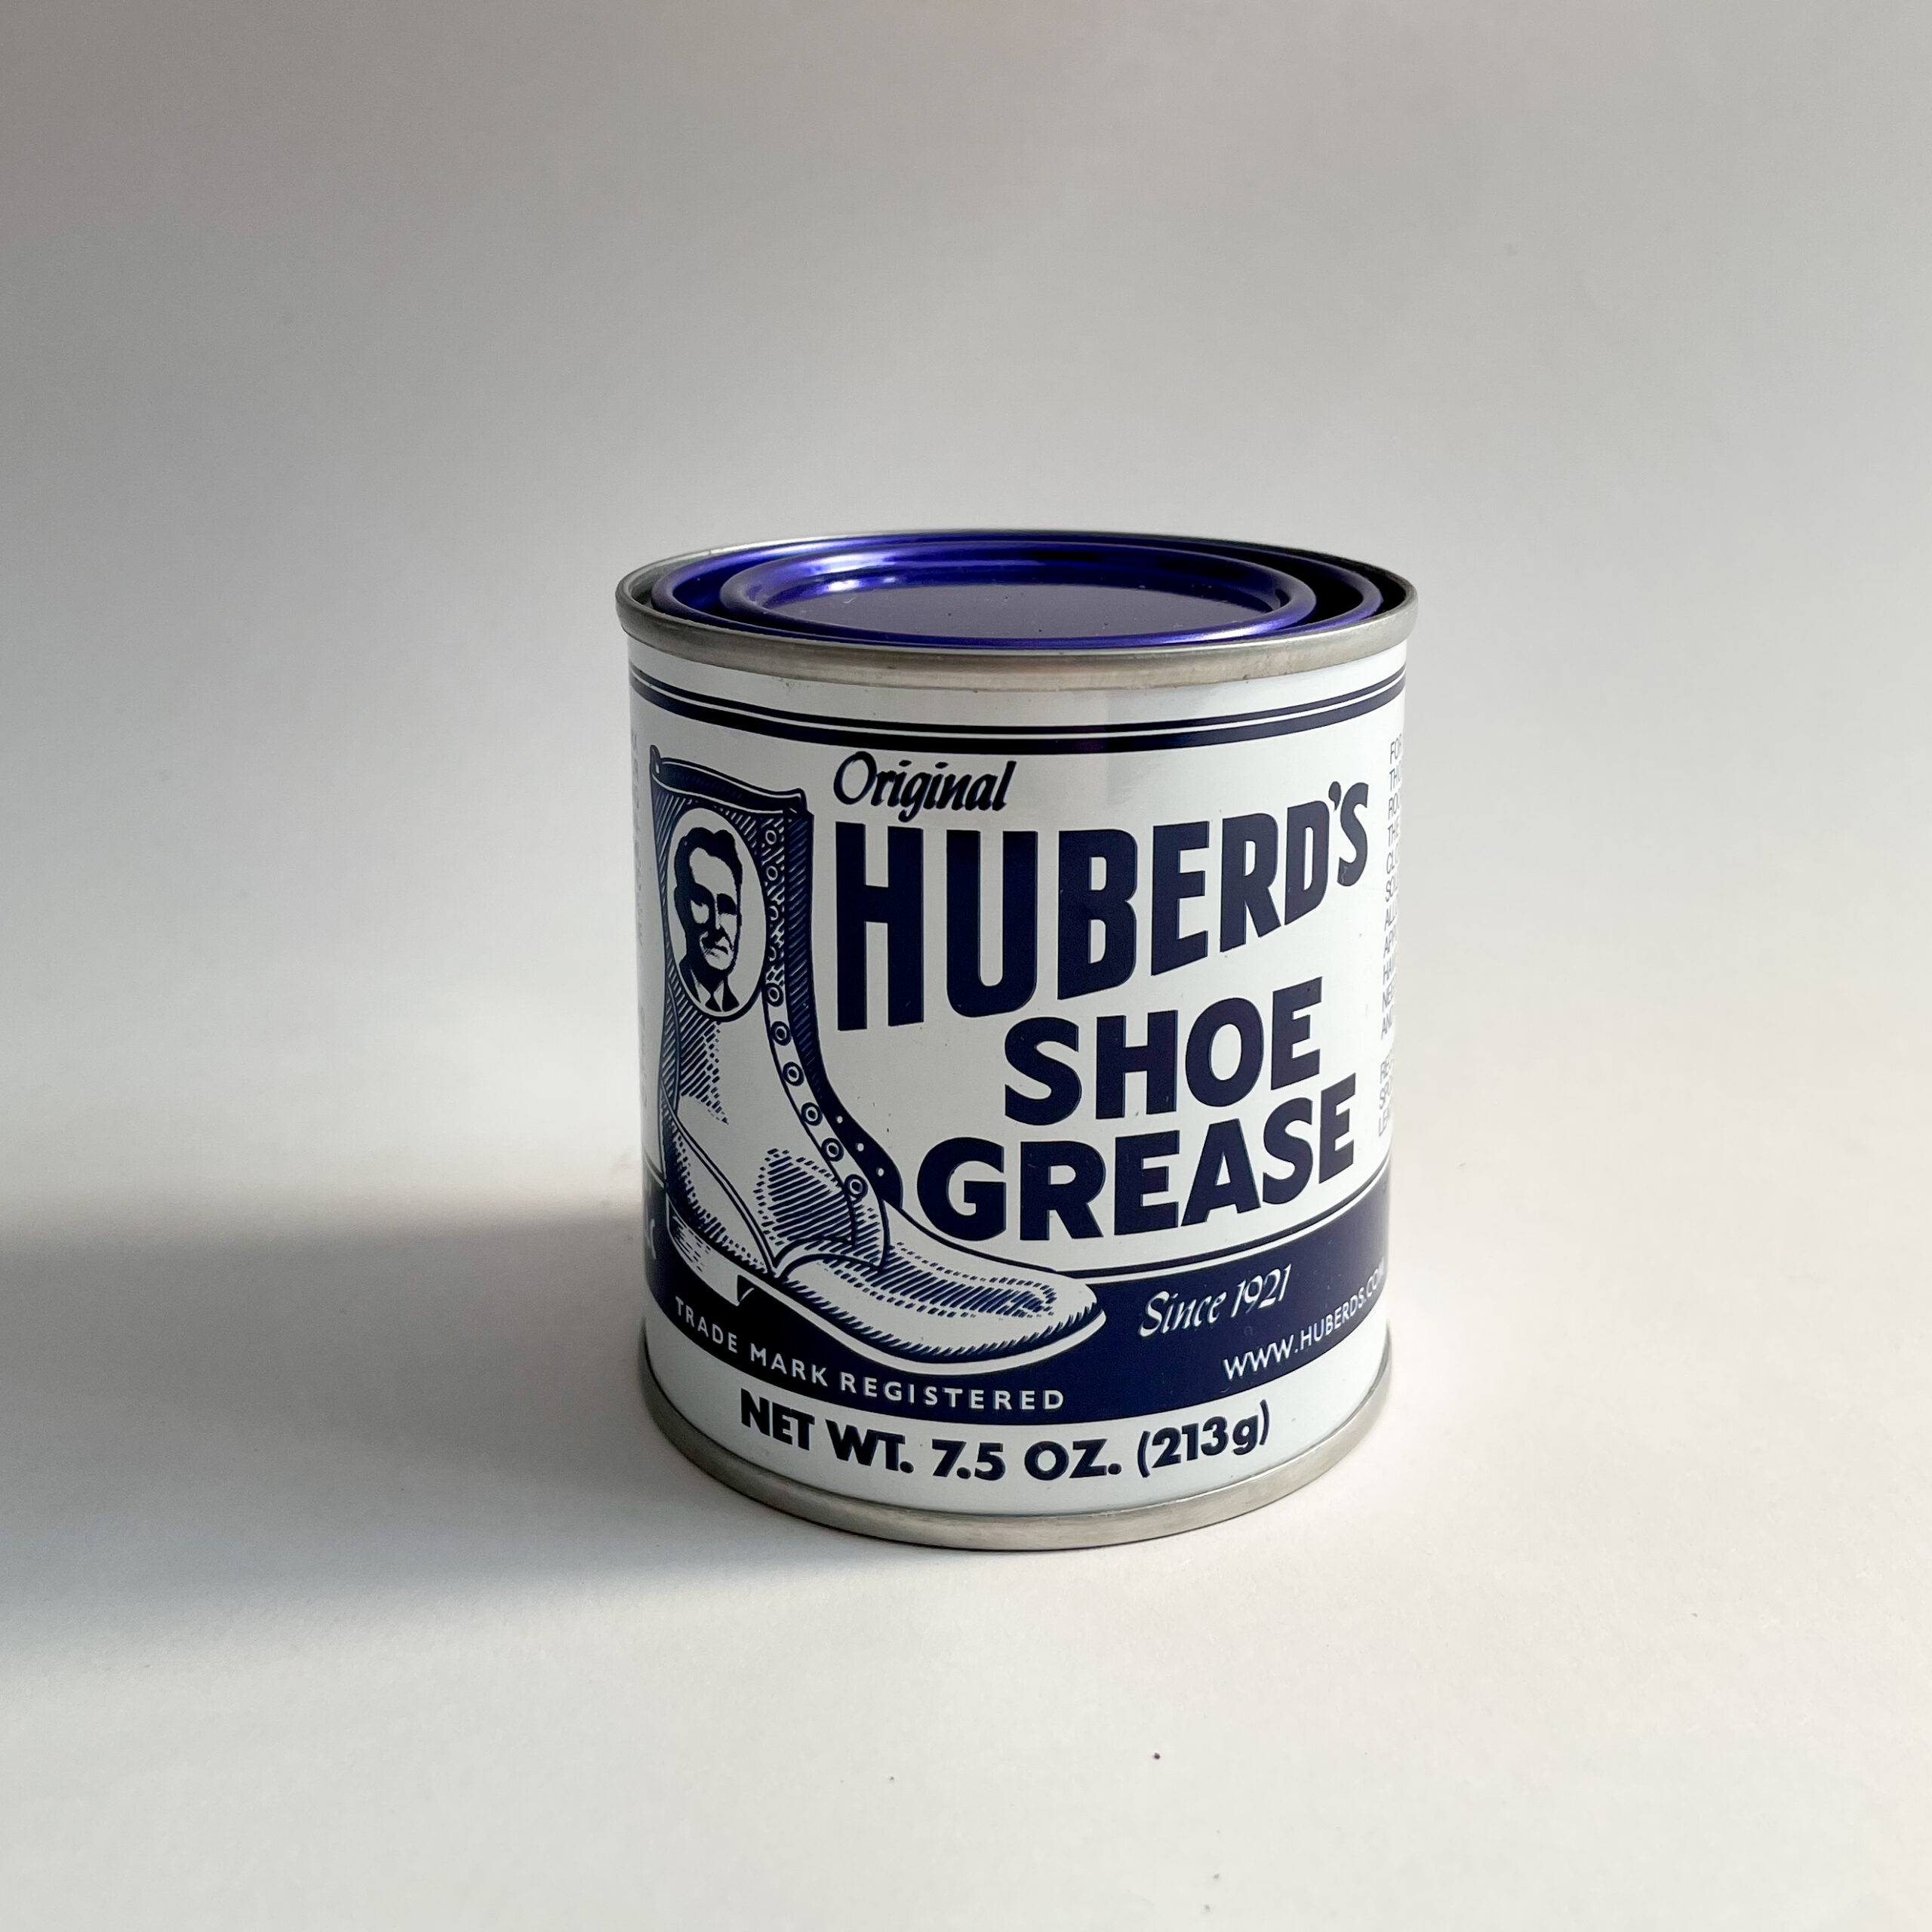 The front of a can of Huberd's Shoe Grease